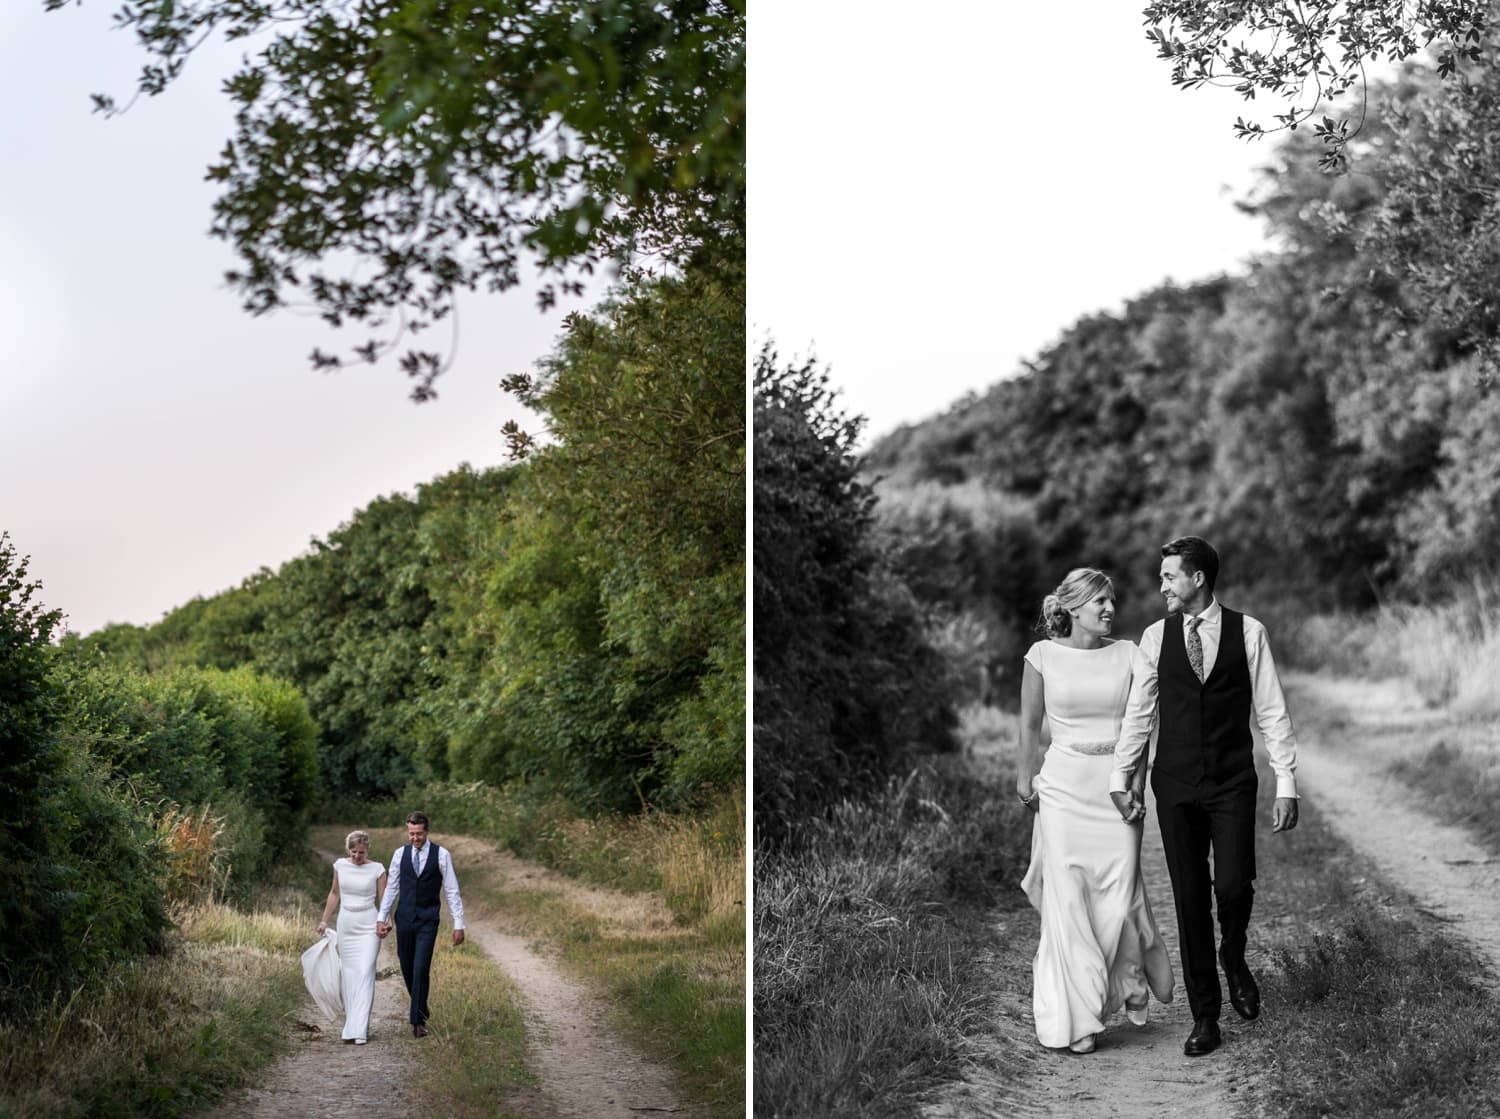 Wedding at Ash Barton in Devon